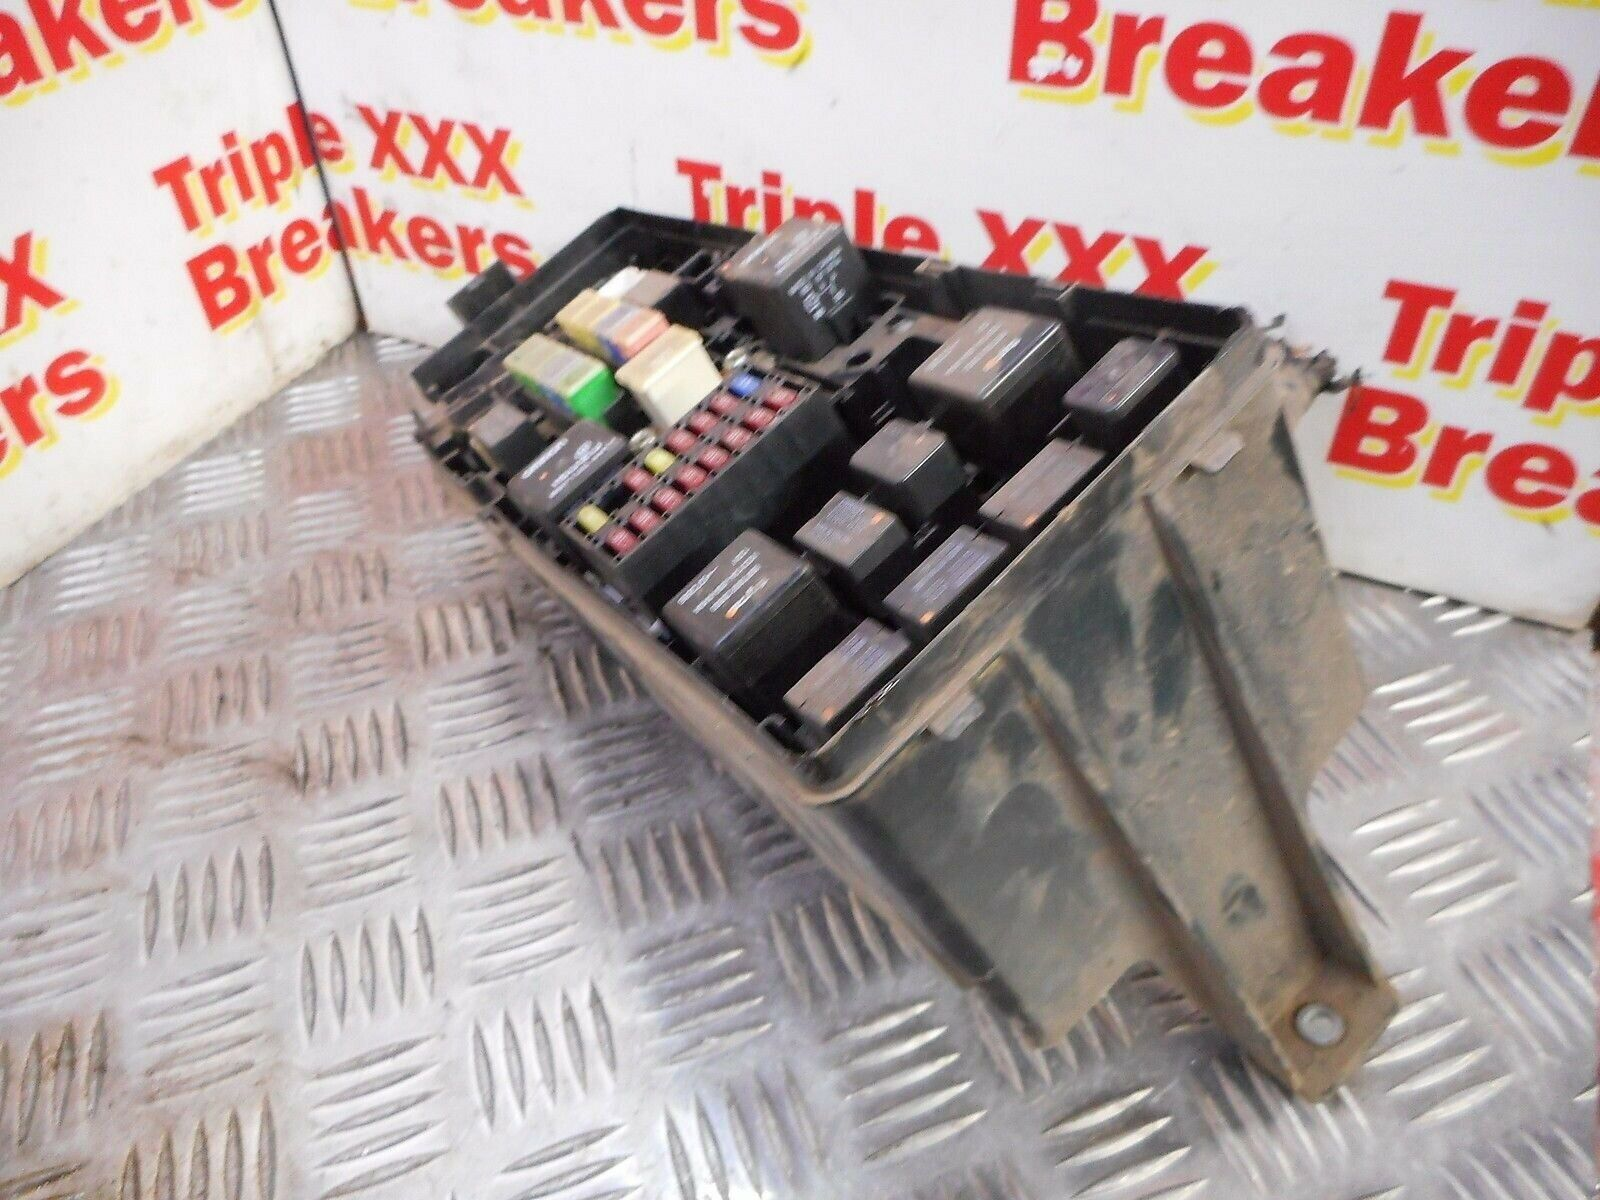 2008 Isuzu Rodeo Denver 25td Fuse Box 2600 Picclick Uk 1 Of 1only Available